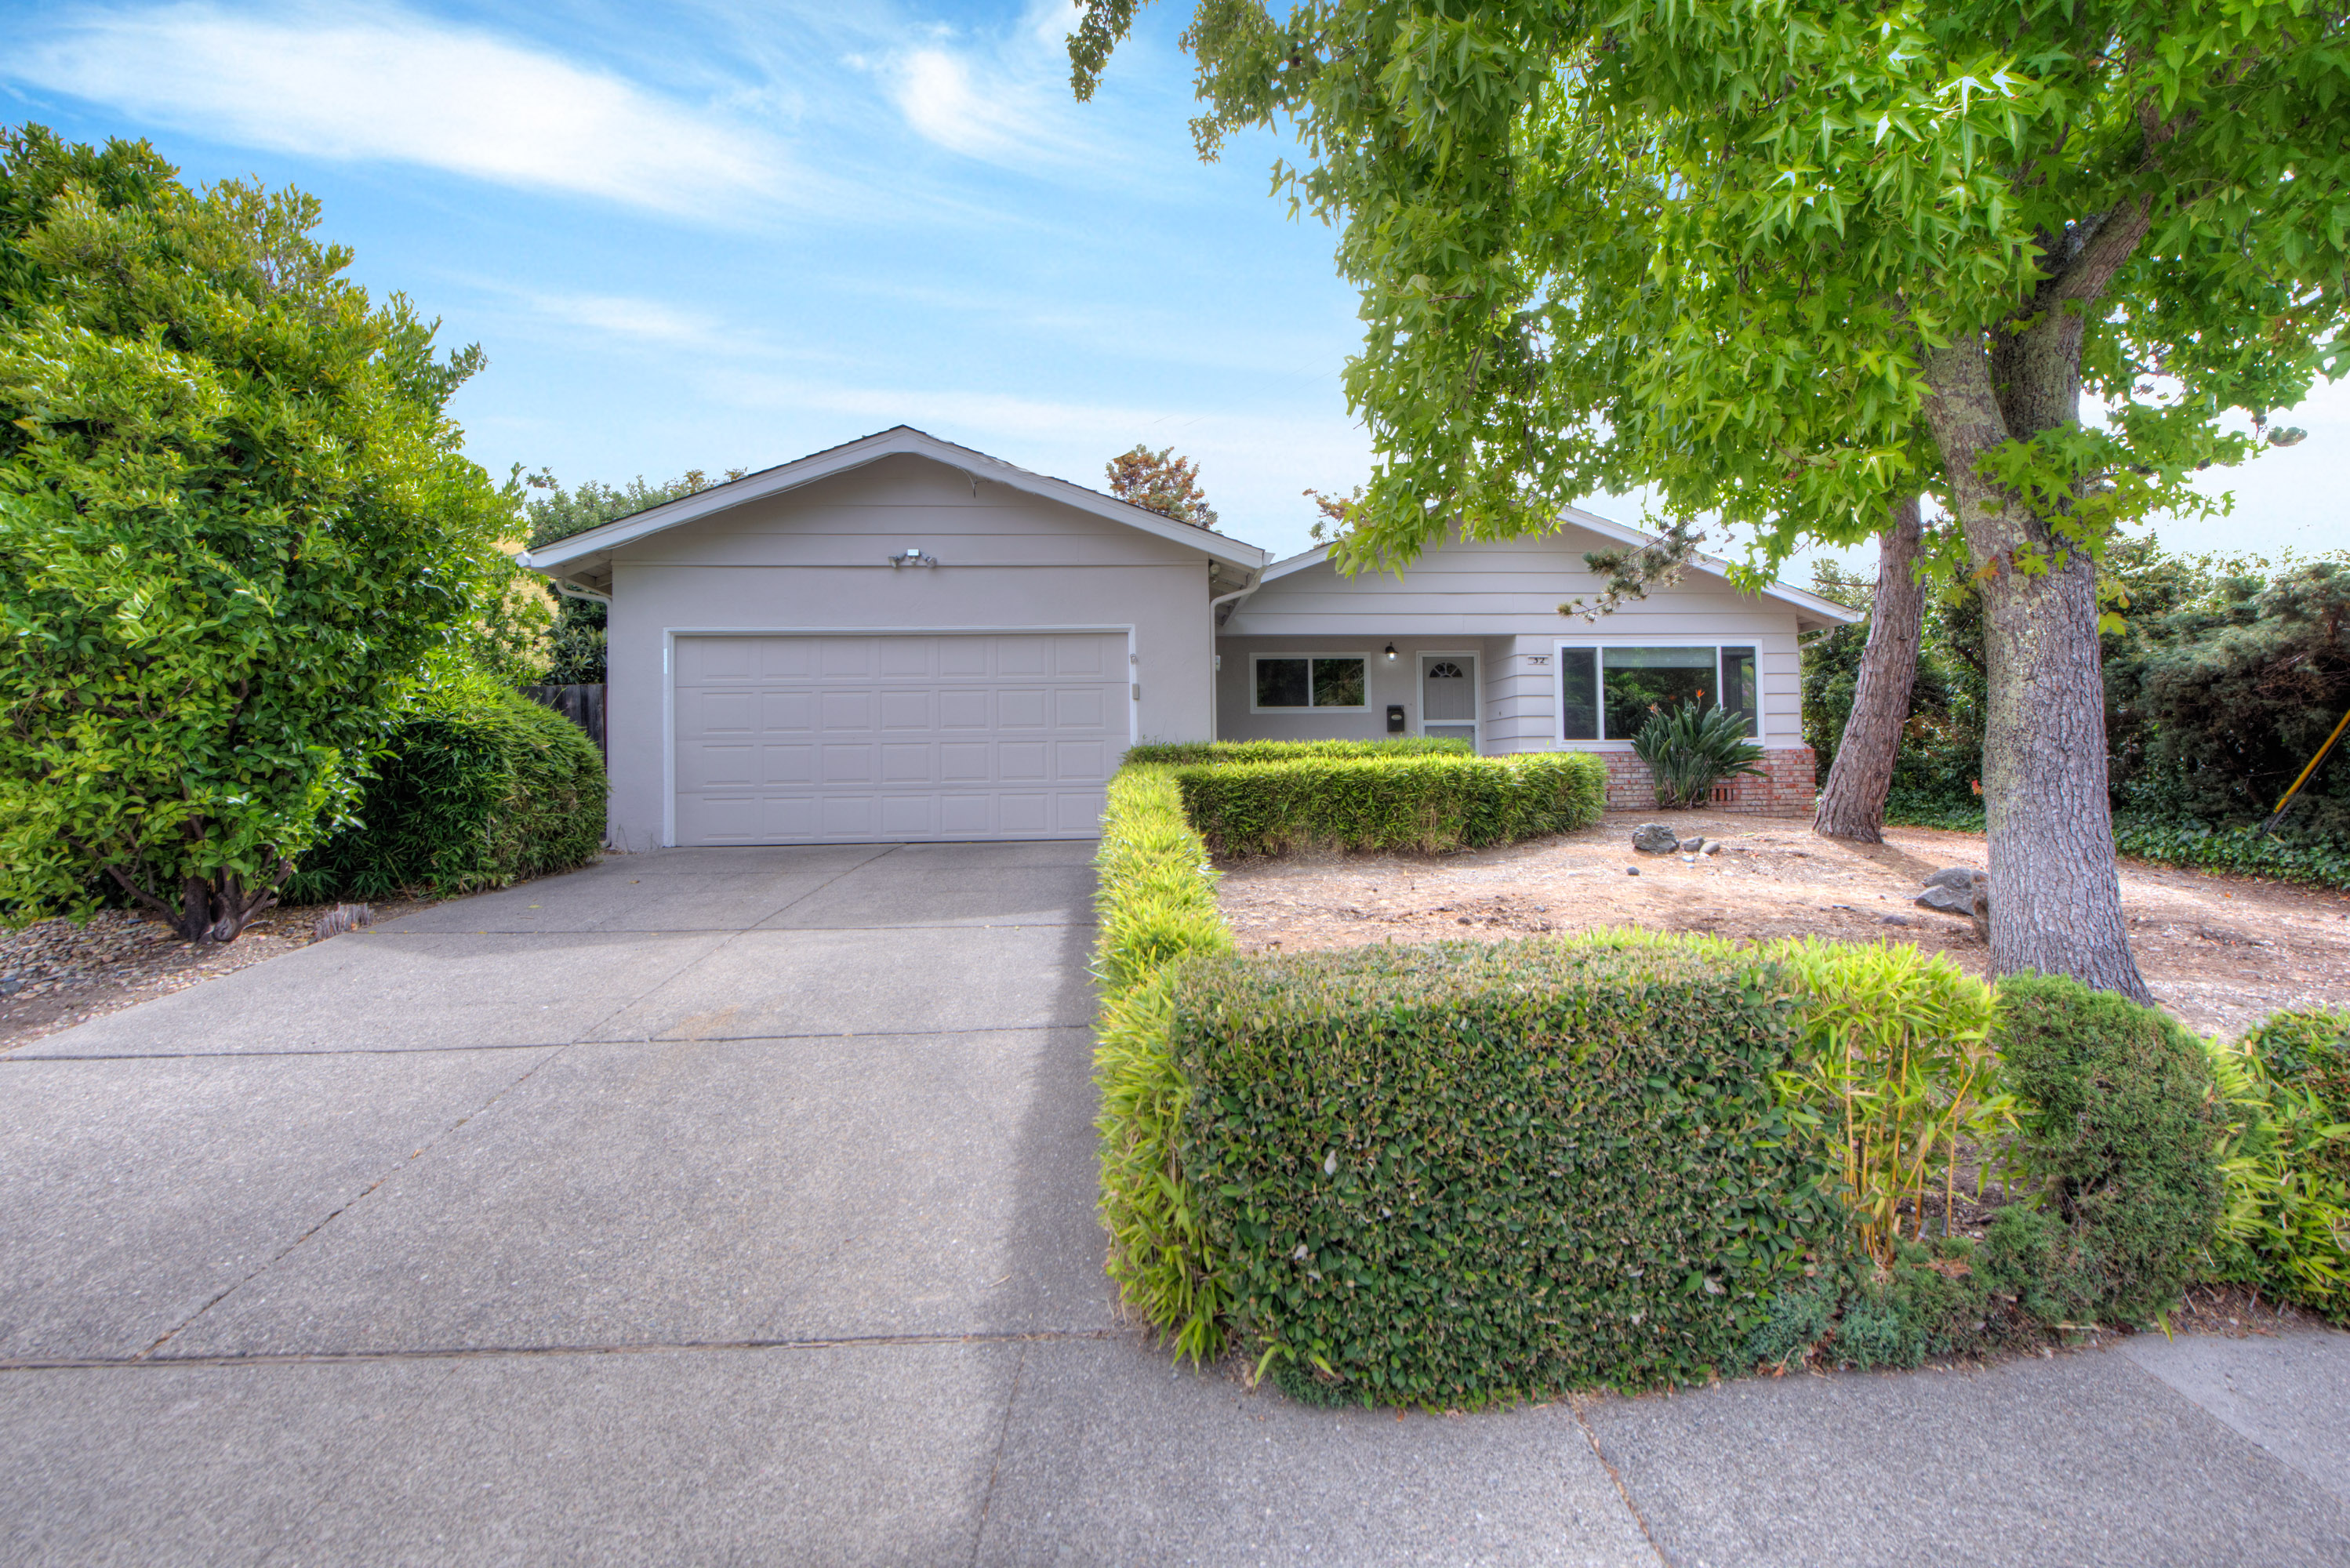 Single Family Home for Sale at Desirable One Story with Level Yard 32 Elena Circle San Rafael, California, 94903 United States